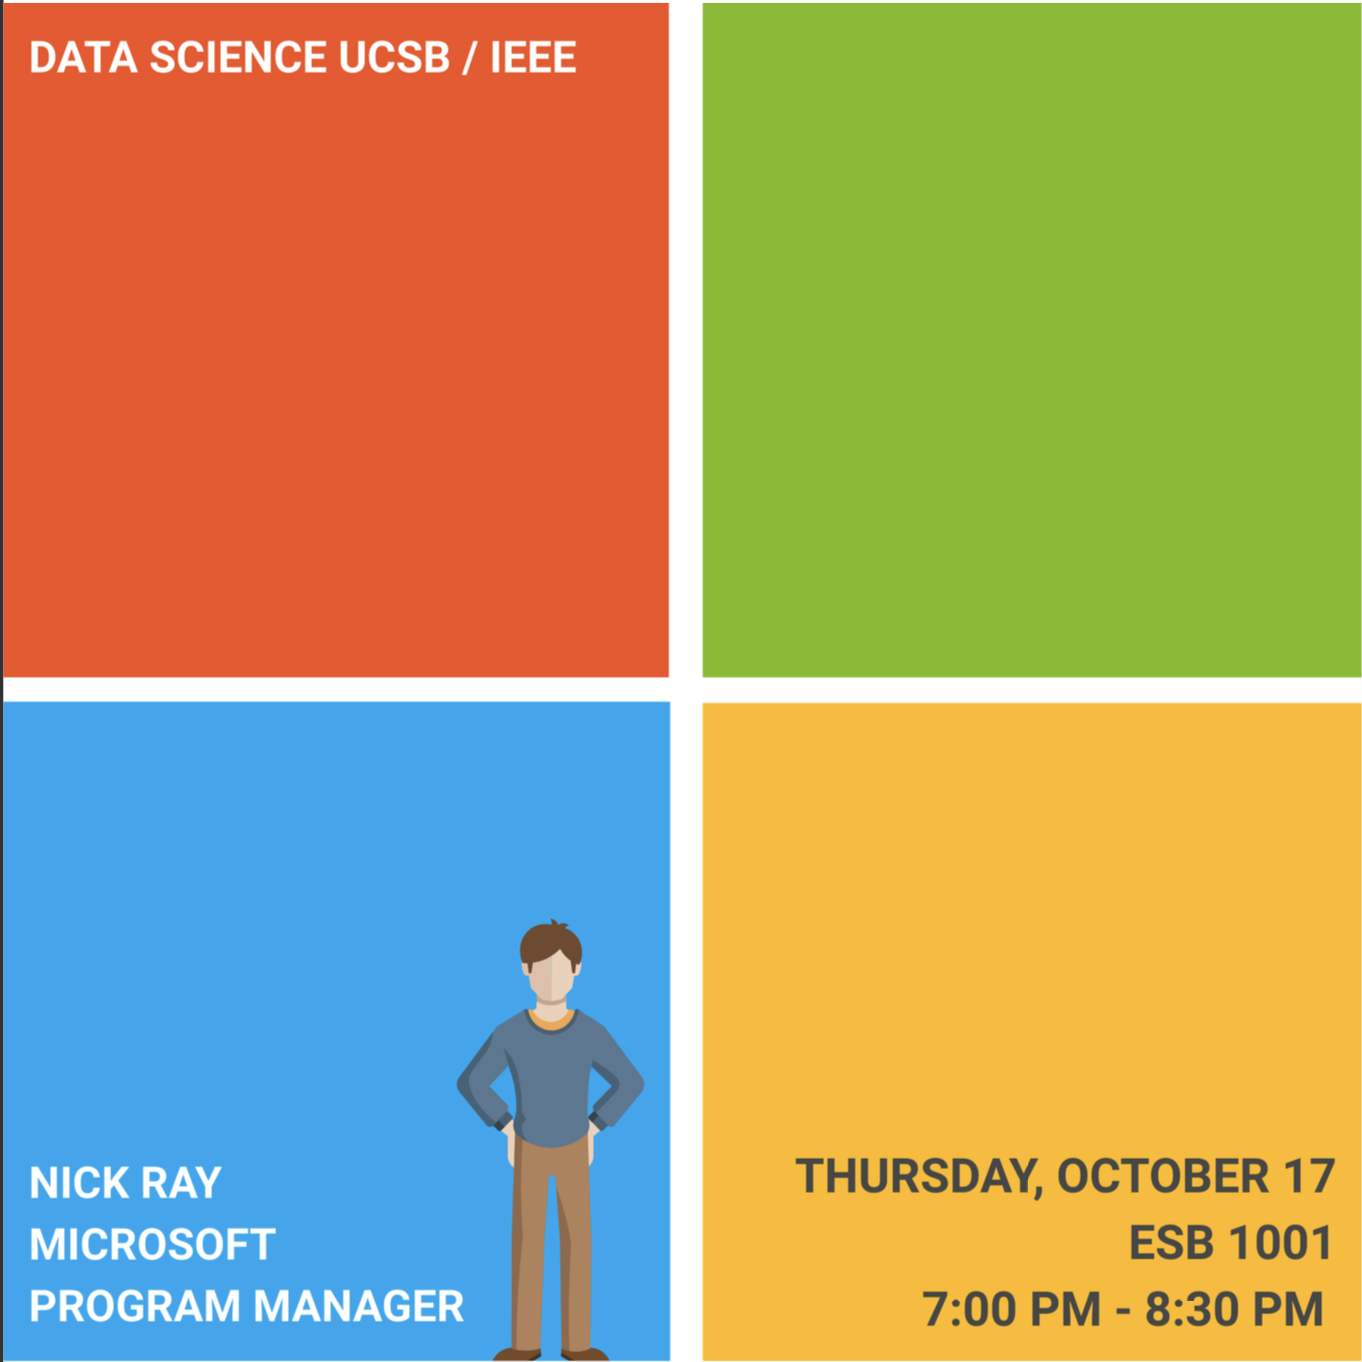 DATA TALK Microsoft